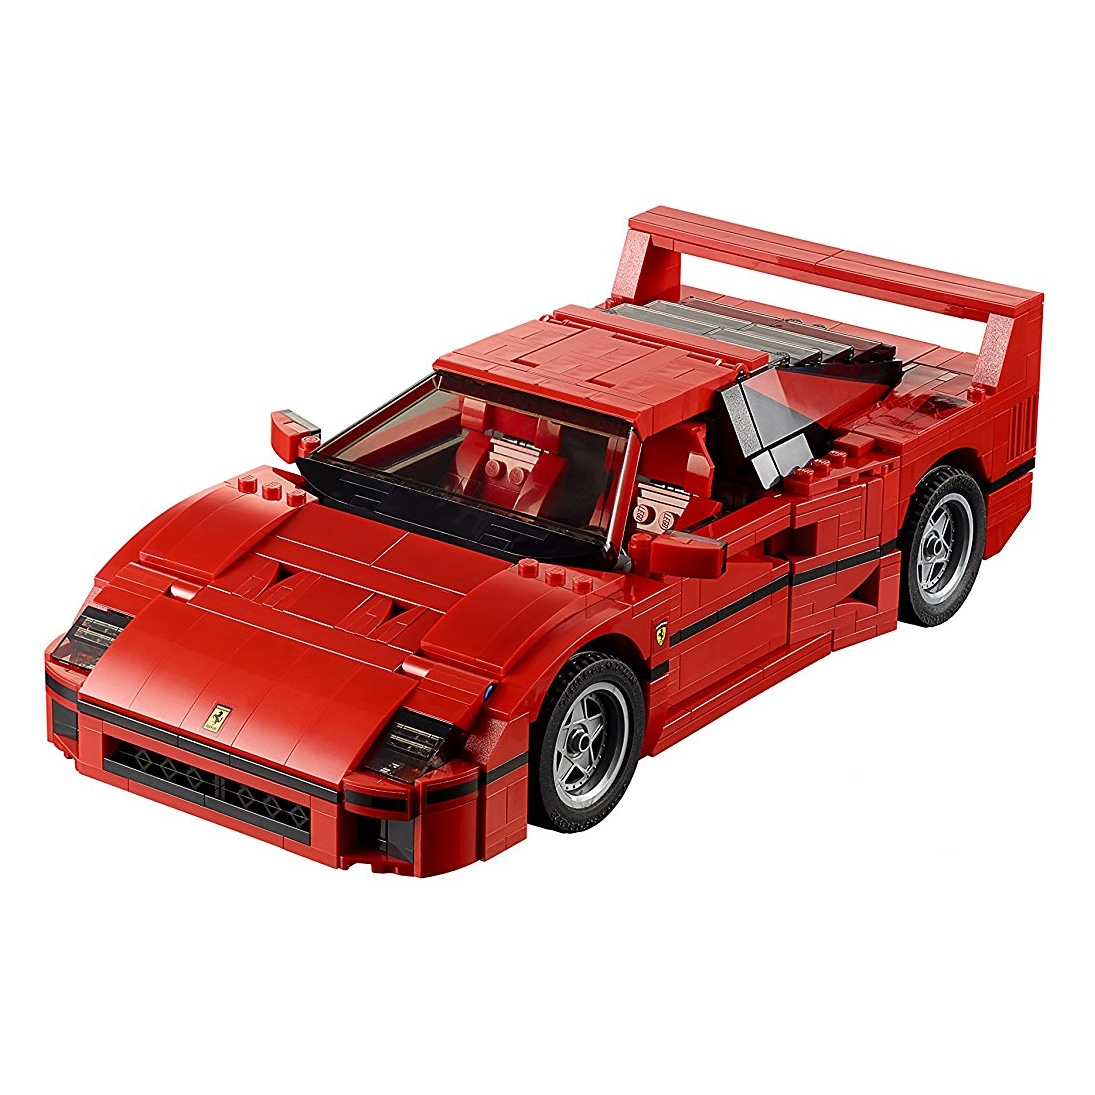 9 Best Lego Cars For 2018 Fun Lego Car Sets For Kids